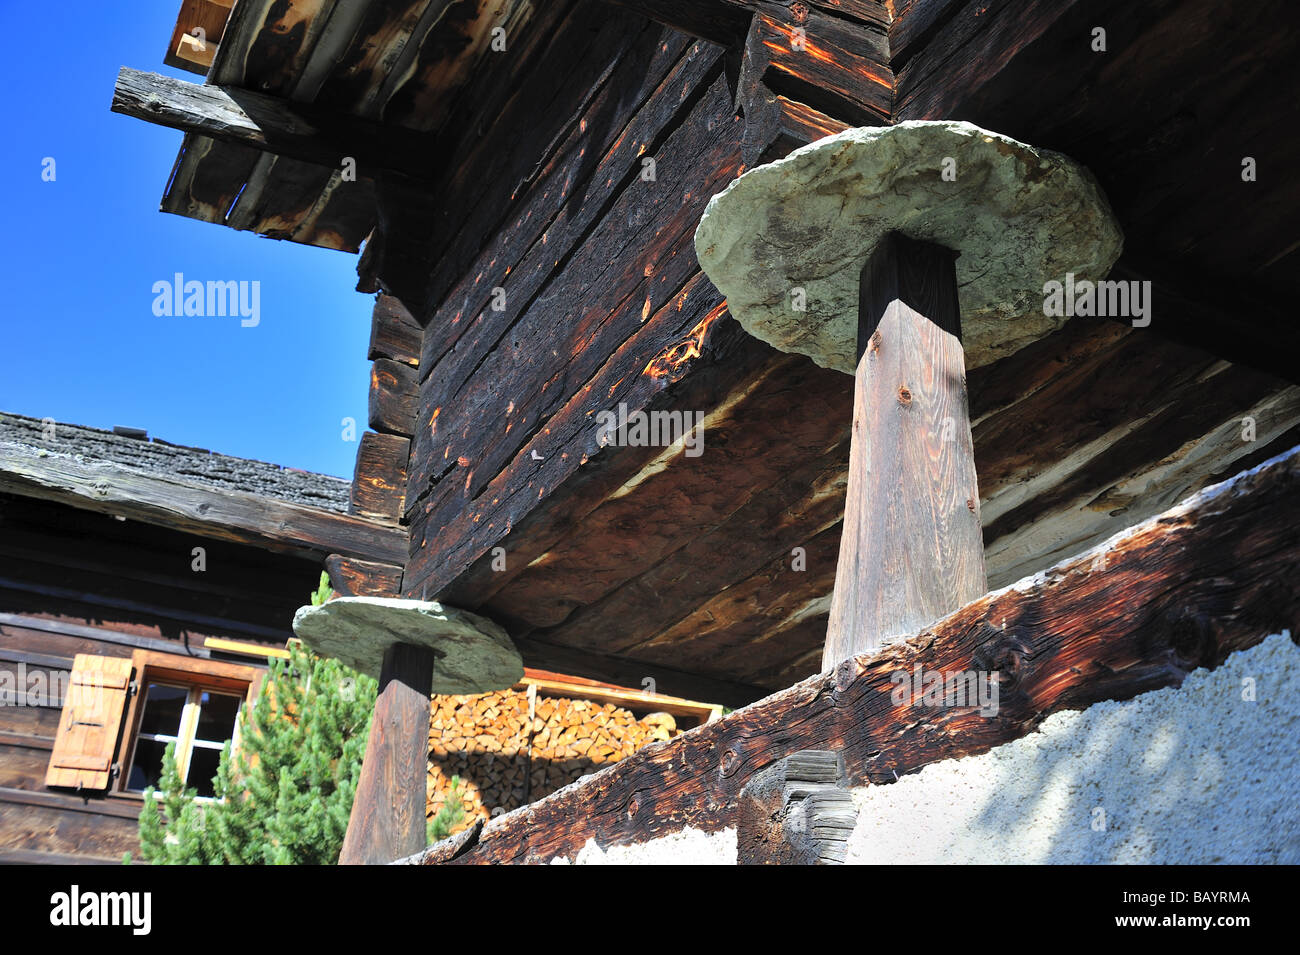 Détail de staddle pierres sous un chalet à Chandolin, Suisse Photo Stock